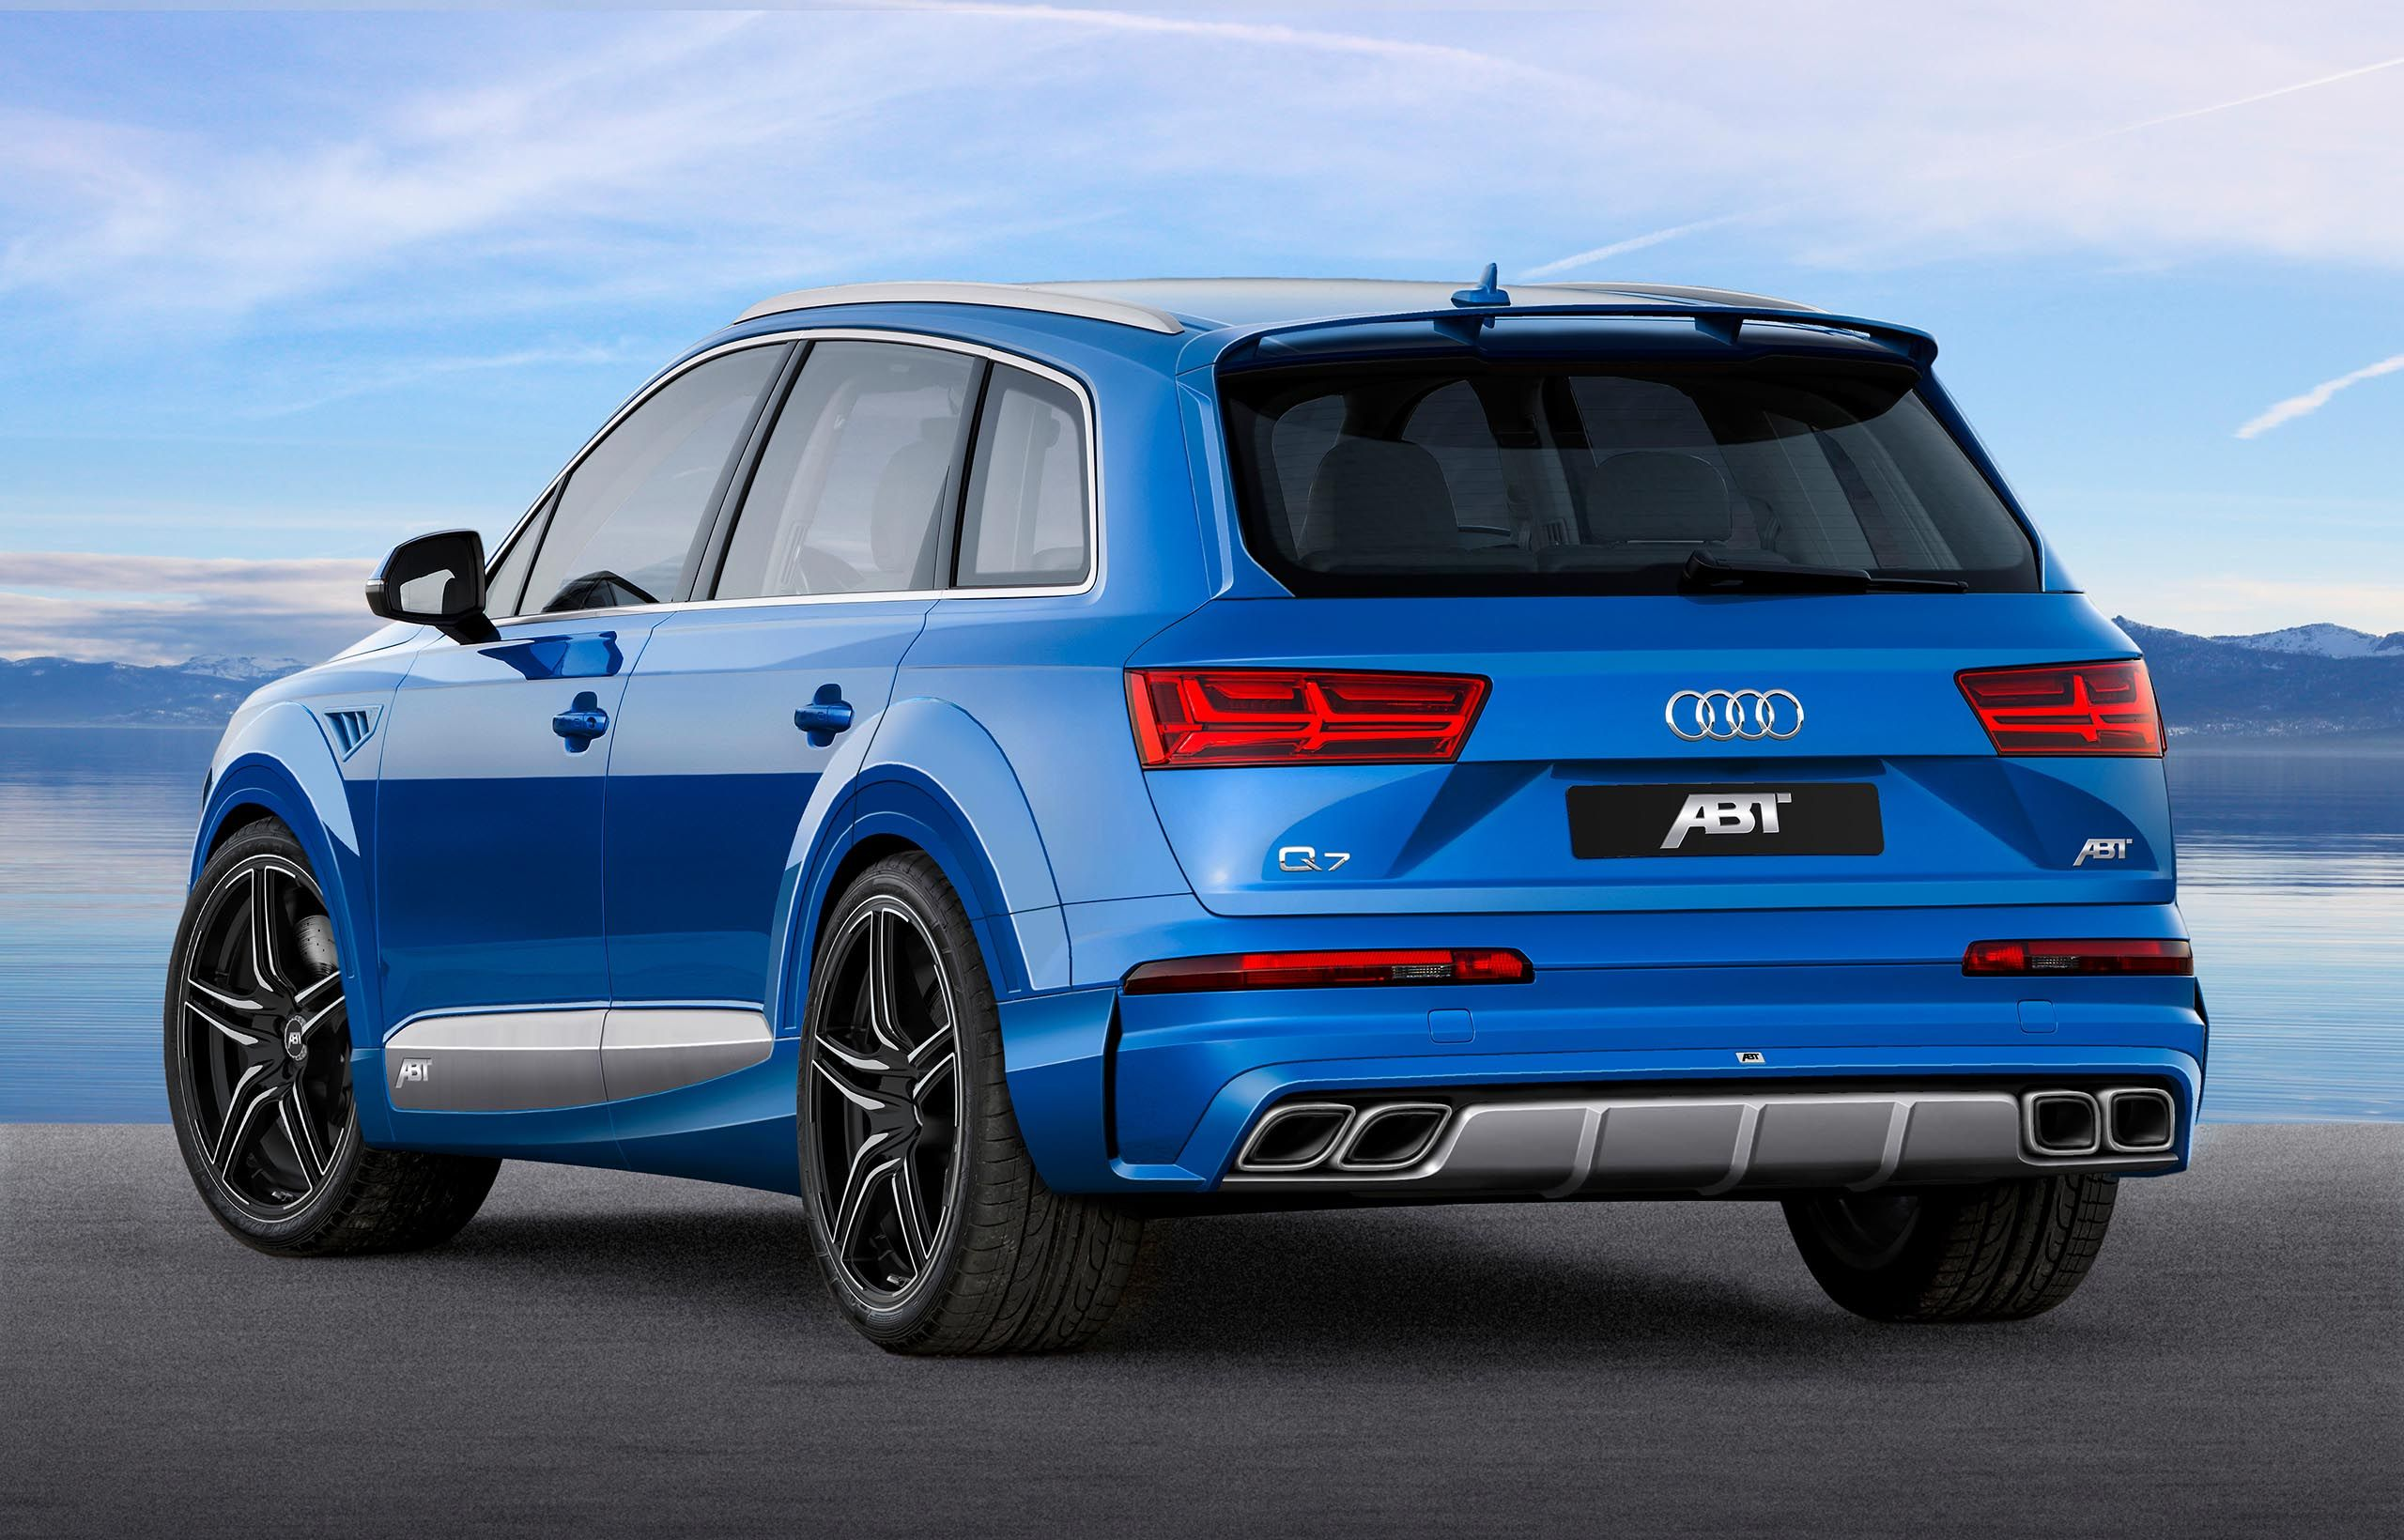 to an audi farewell img a suv edition for naples special iconic sale sport